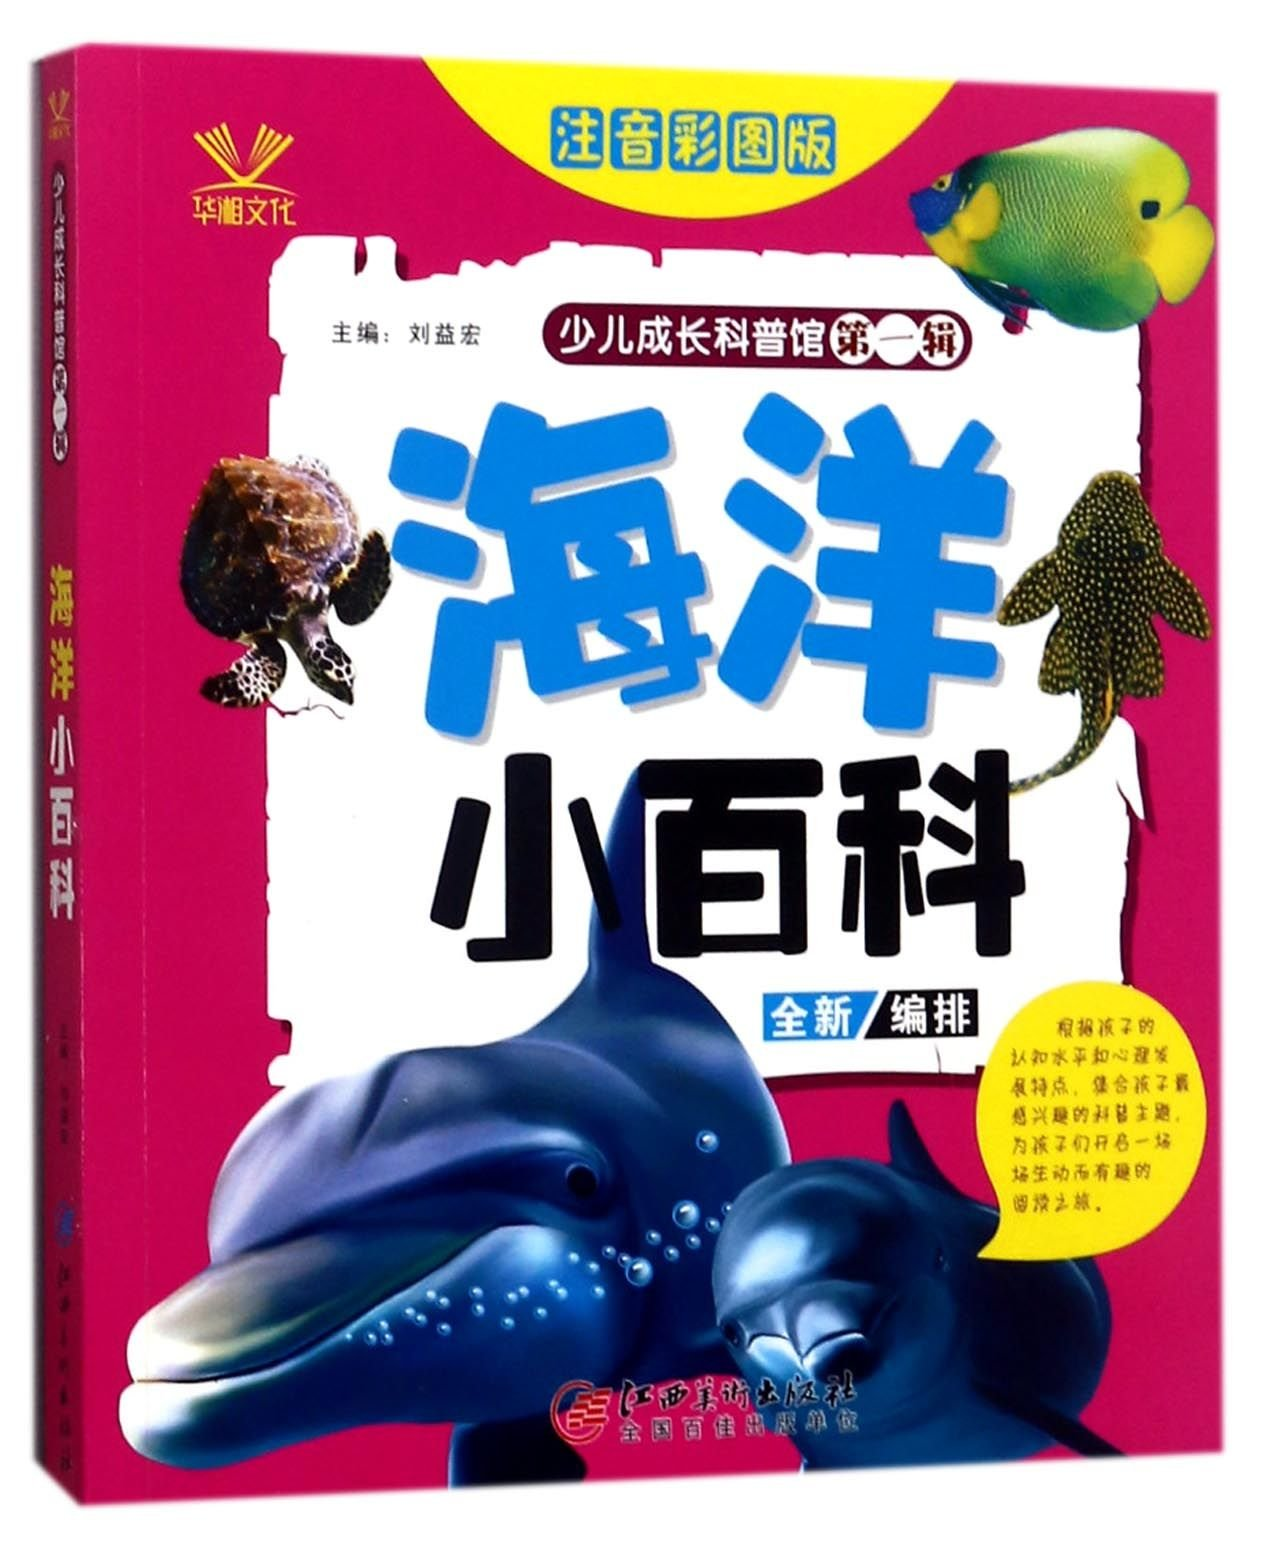 Ocean Encyclopedia (Illustrated, with Phonetic Notation) (Chinese Edition) pdf